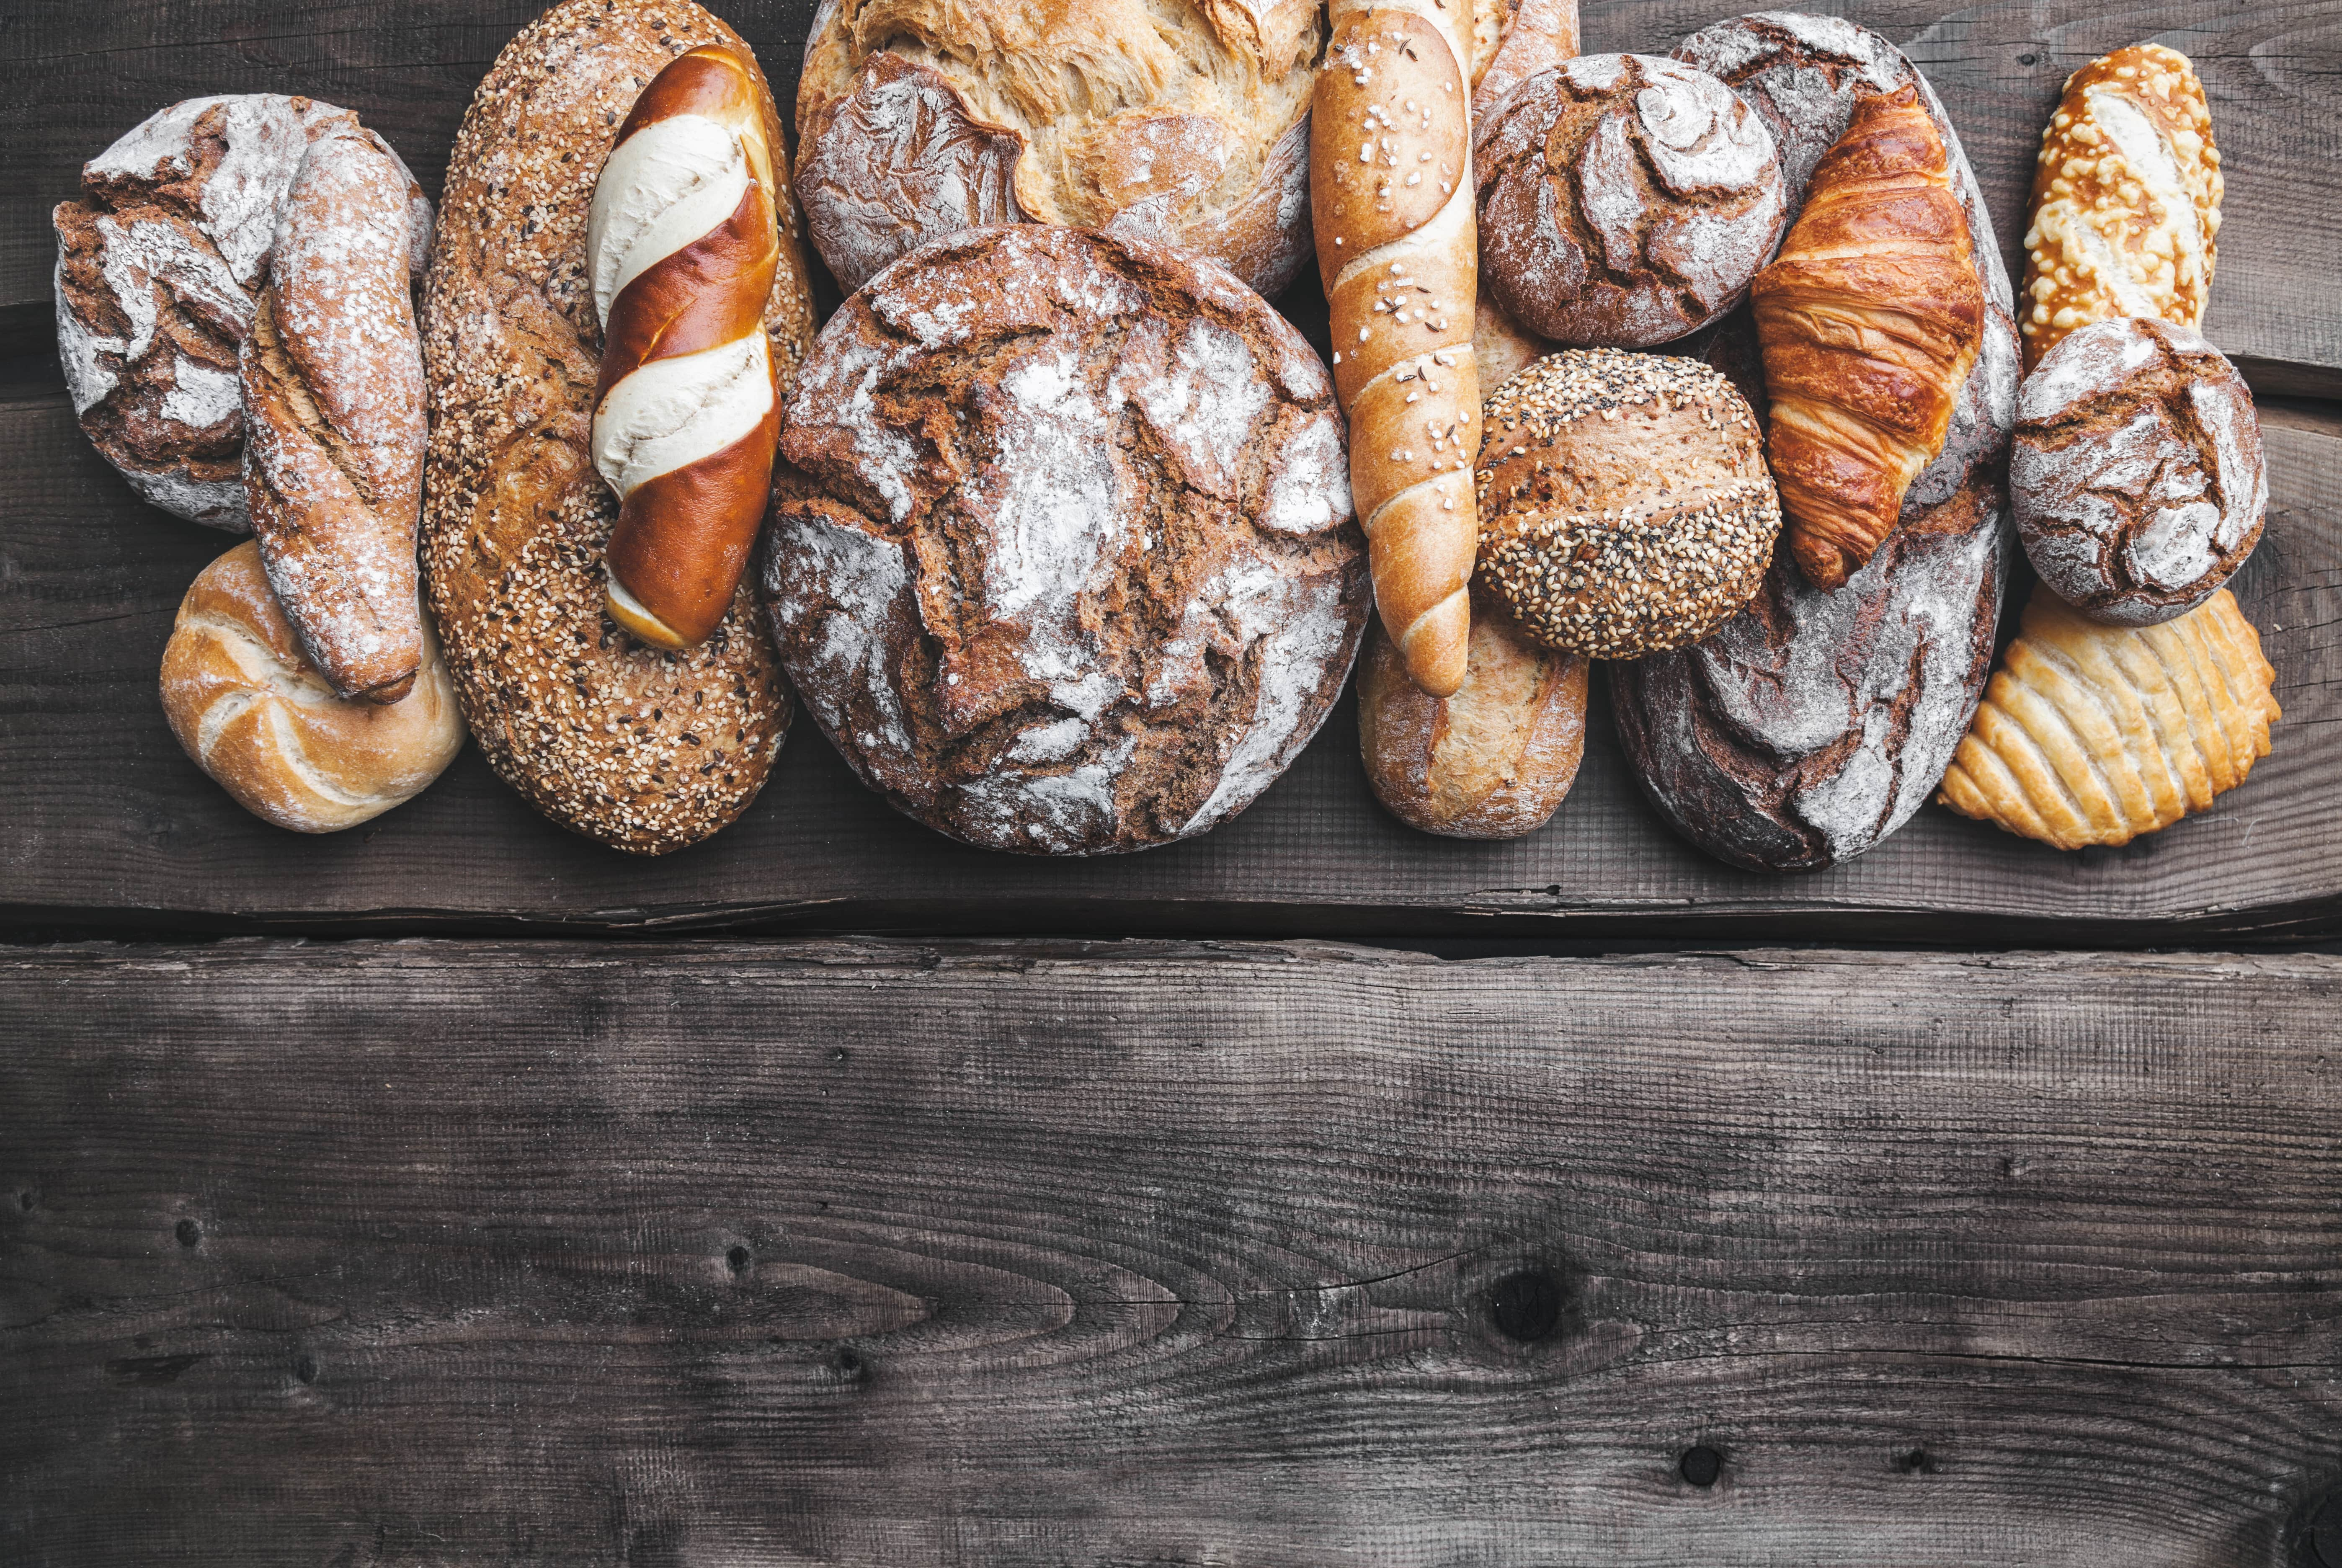 delicious-fresh-bread-on-wooden-background-P9FSLCH-min